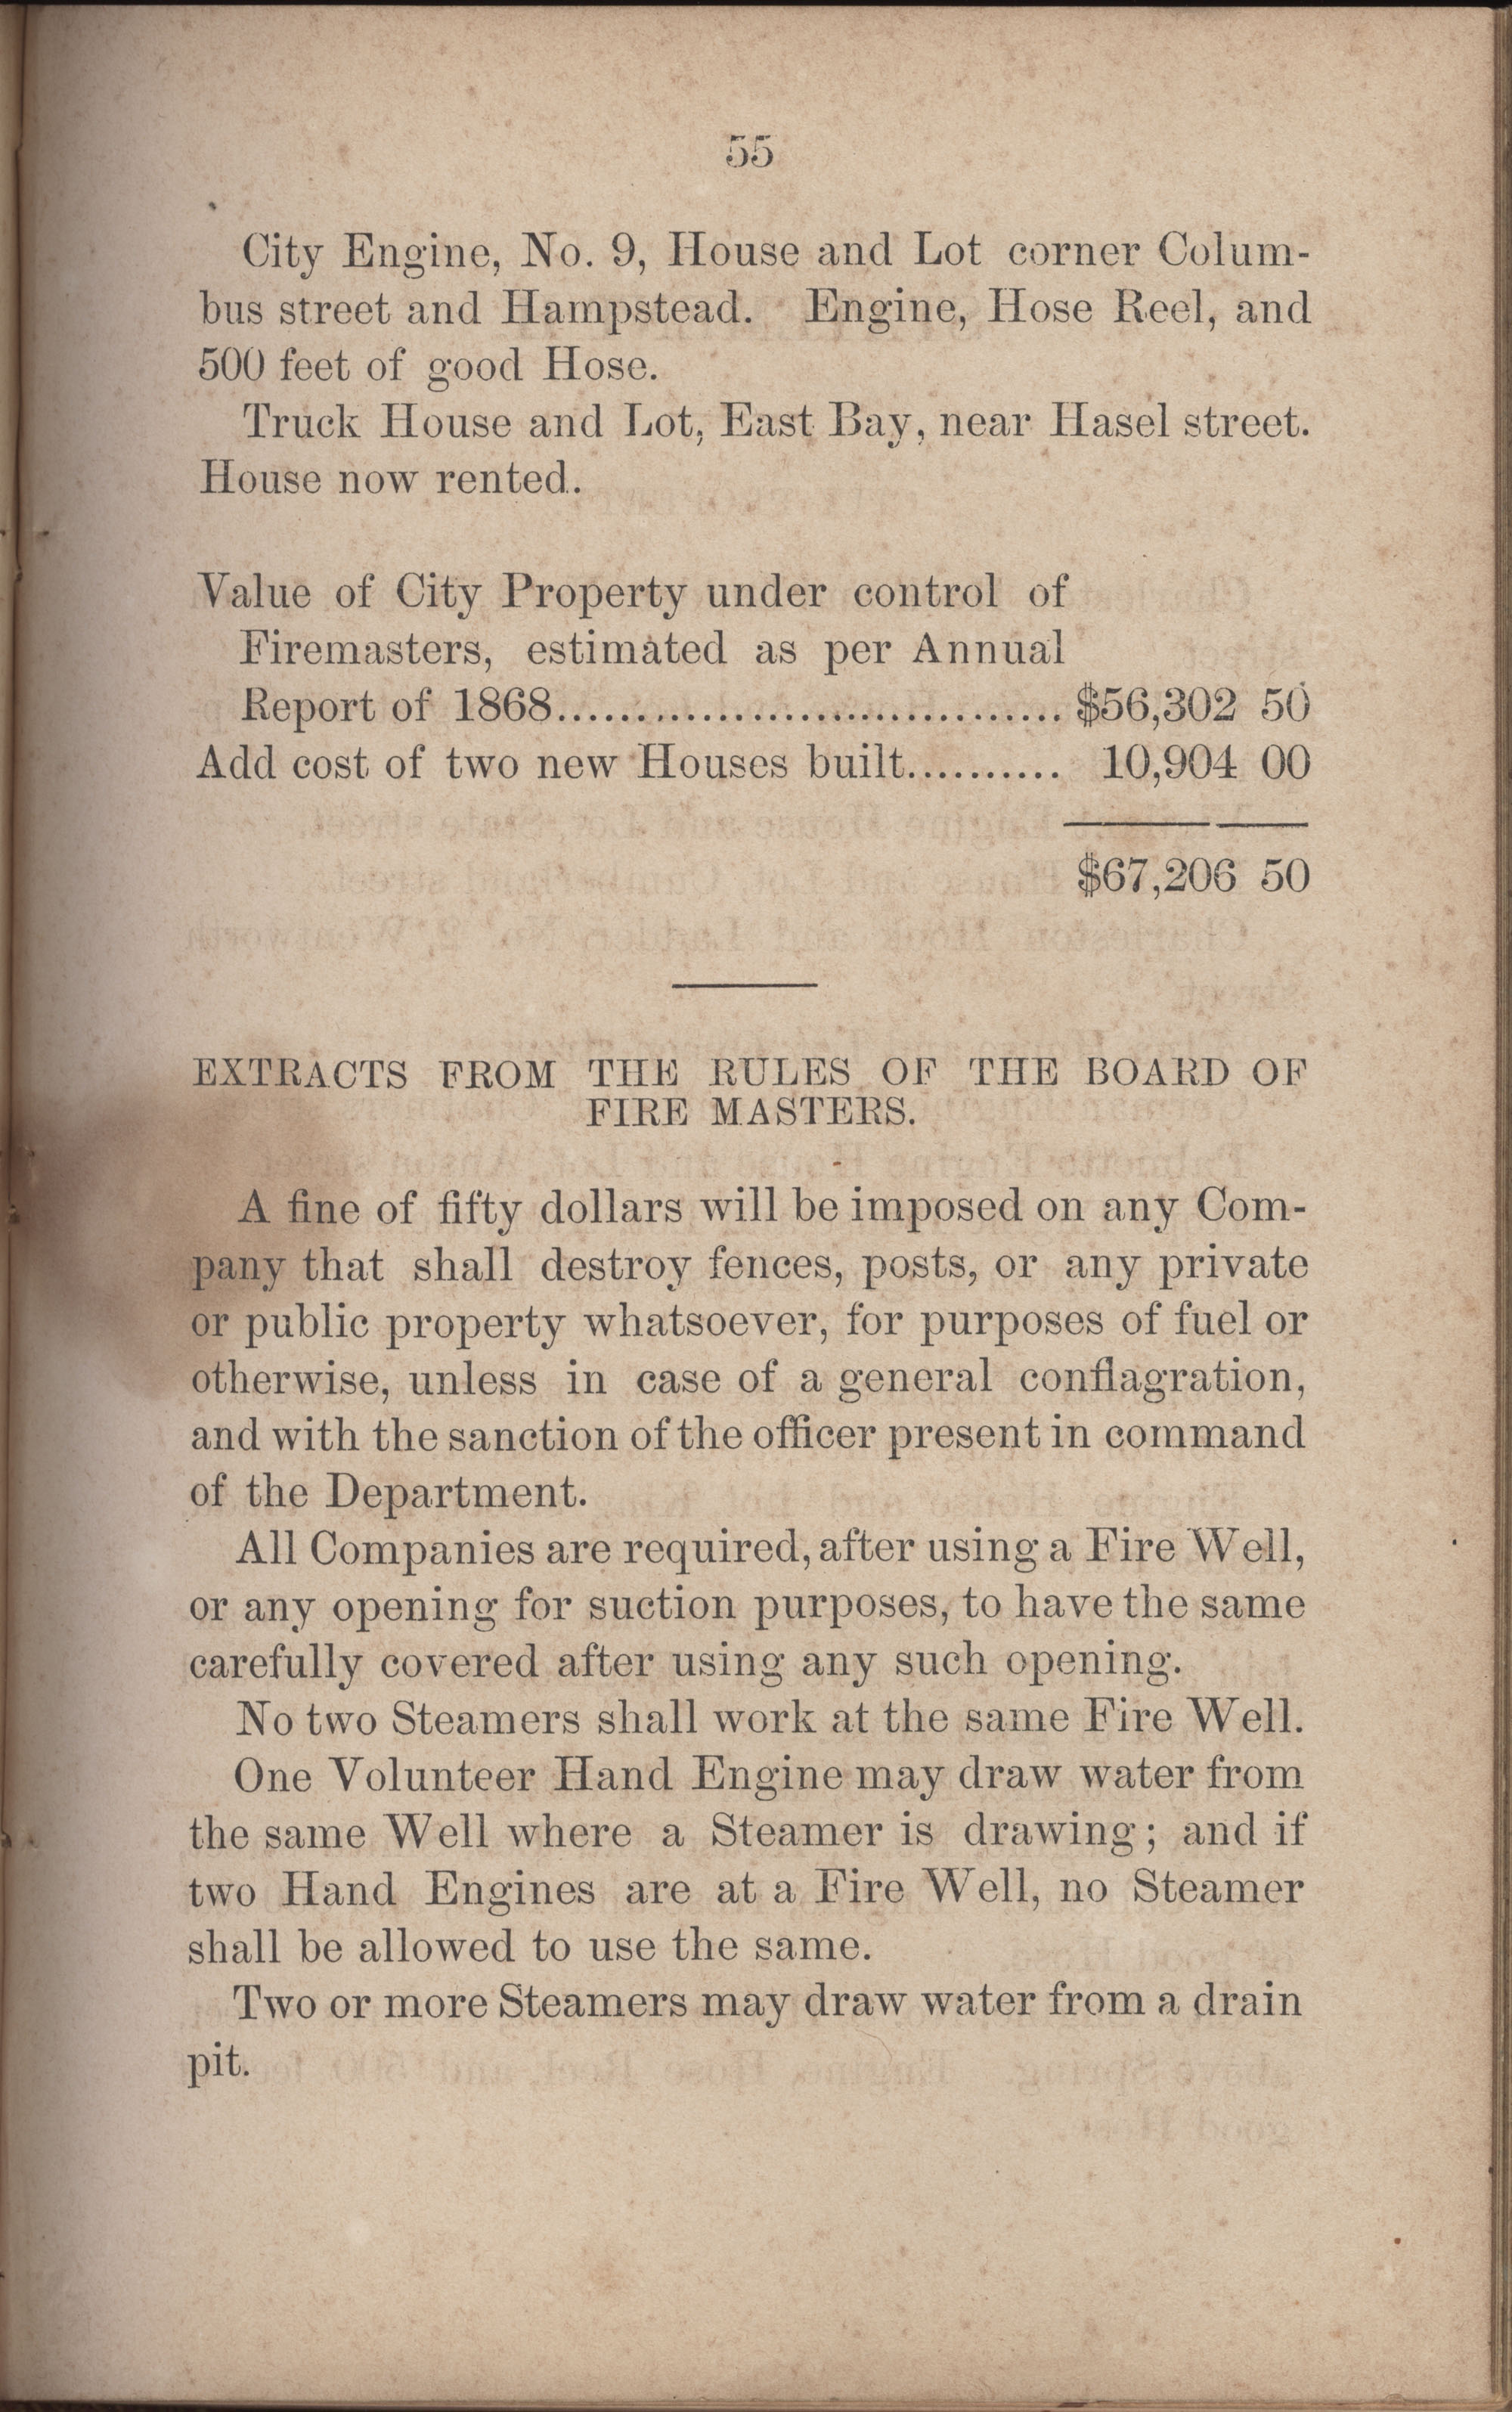 Annual Report of the Chief of the Fire Department of the City of Charleston, page 282